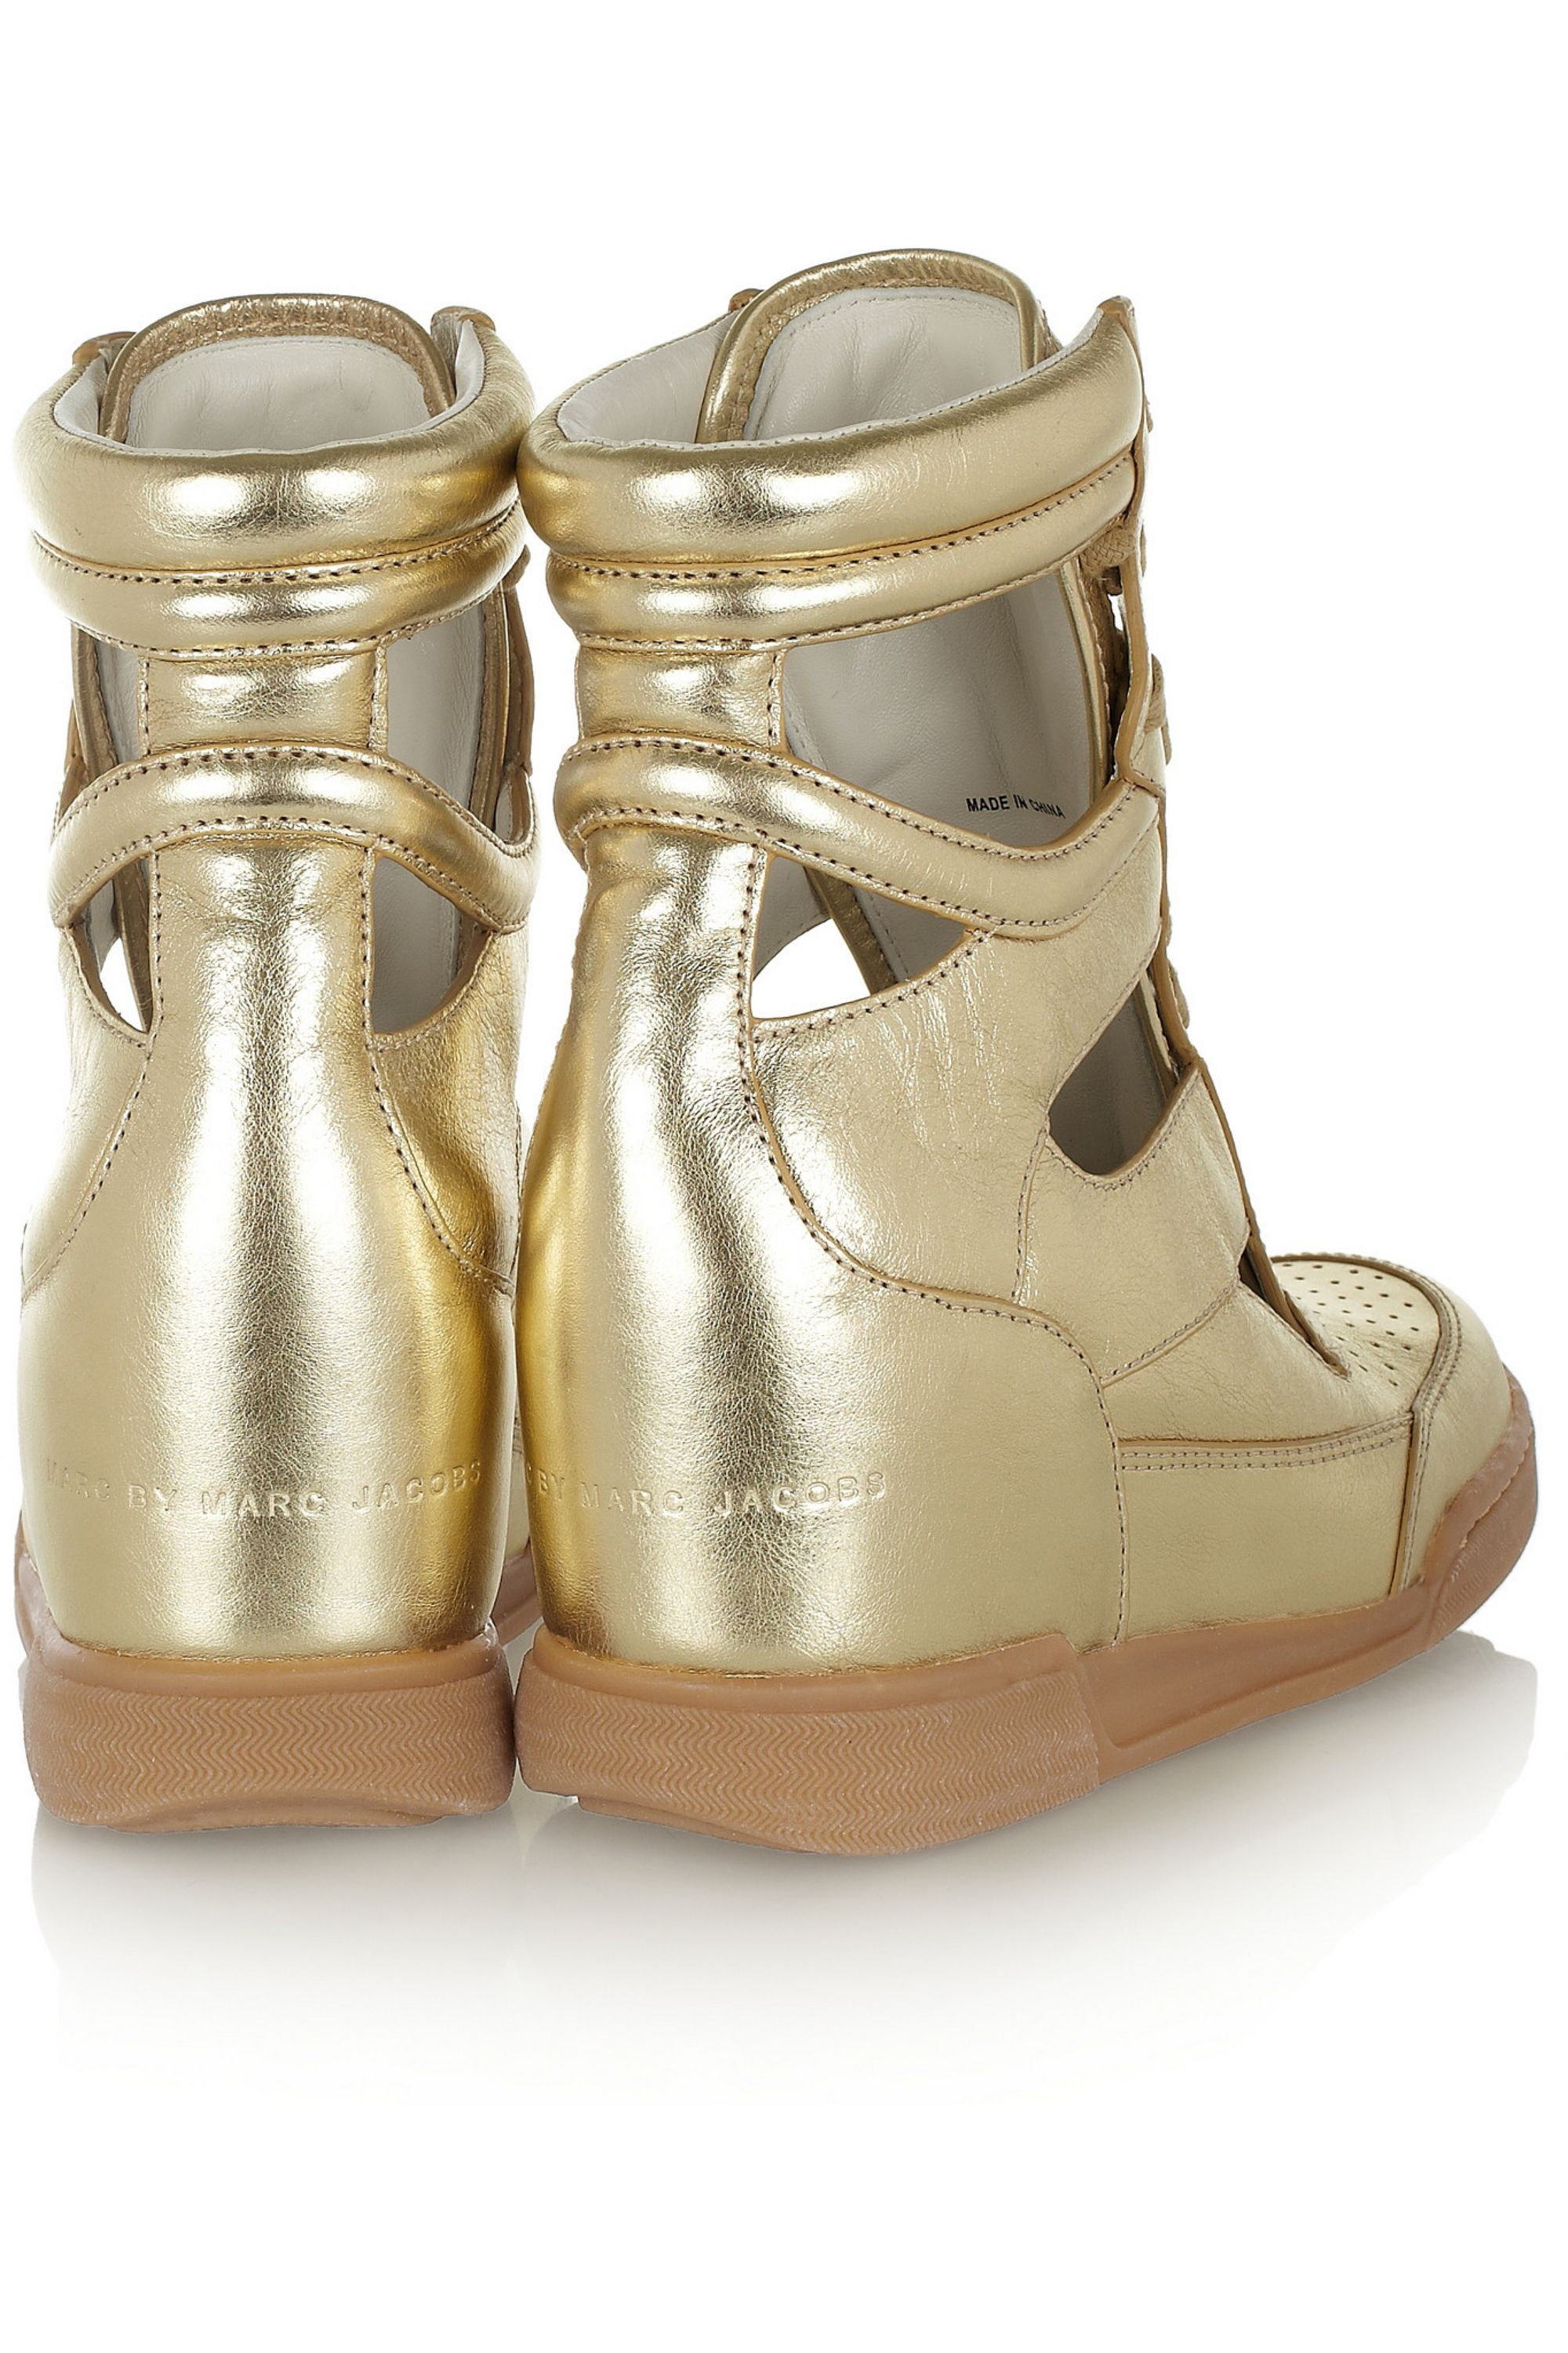 Marc by Marc Jacobs Cutout metallic leather wedge sneakers